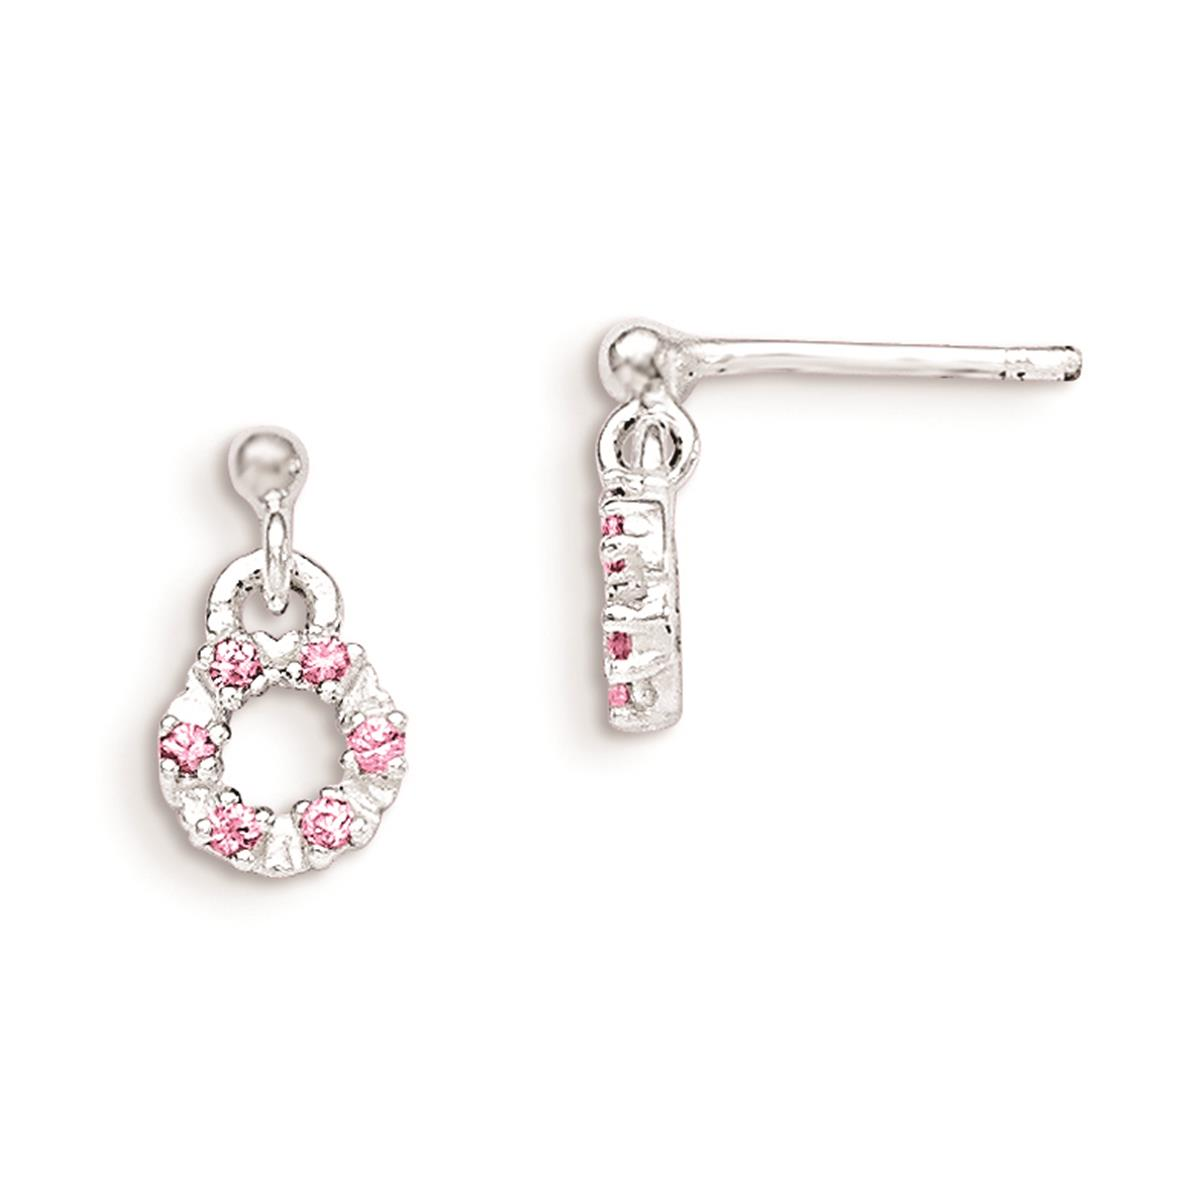 925 SS Polished Pink and White CZ Circle Kid's Post Dangle Earrings 7mm x 12mm